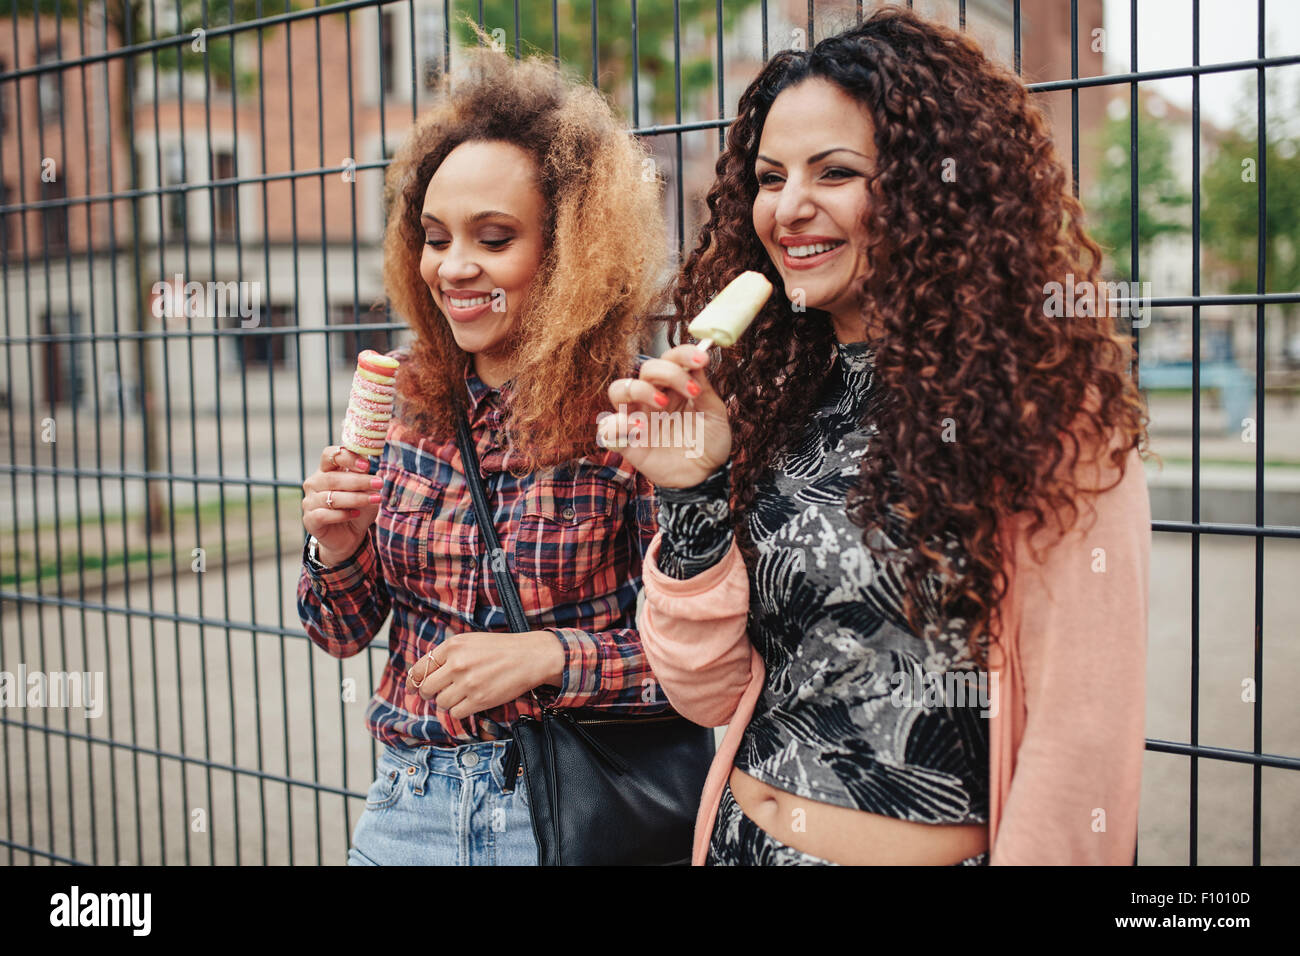 Cheerful young girls eating candy ice cream. Deux jeunes femmes se tenant debout contre une clôture, souriant Photo Stock